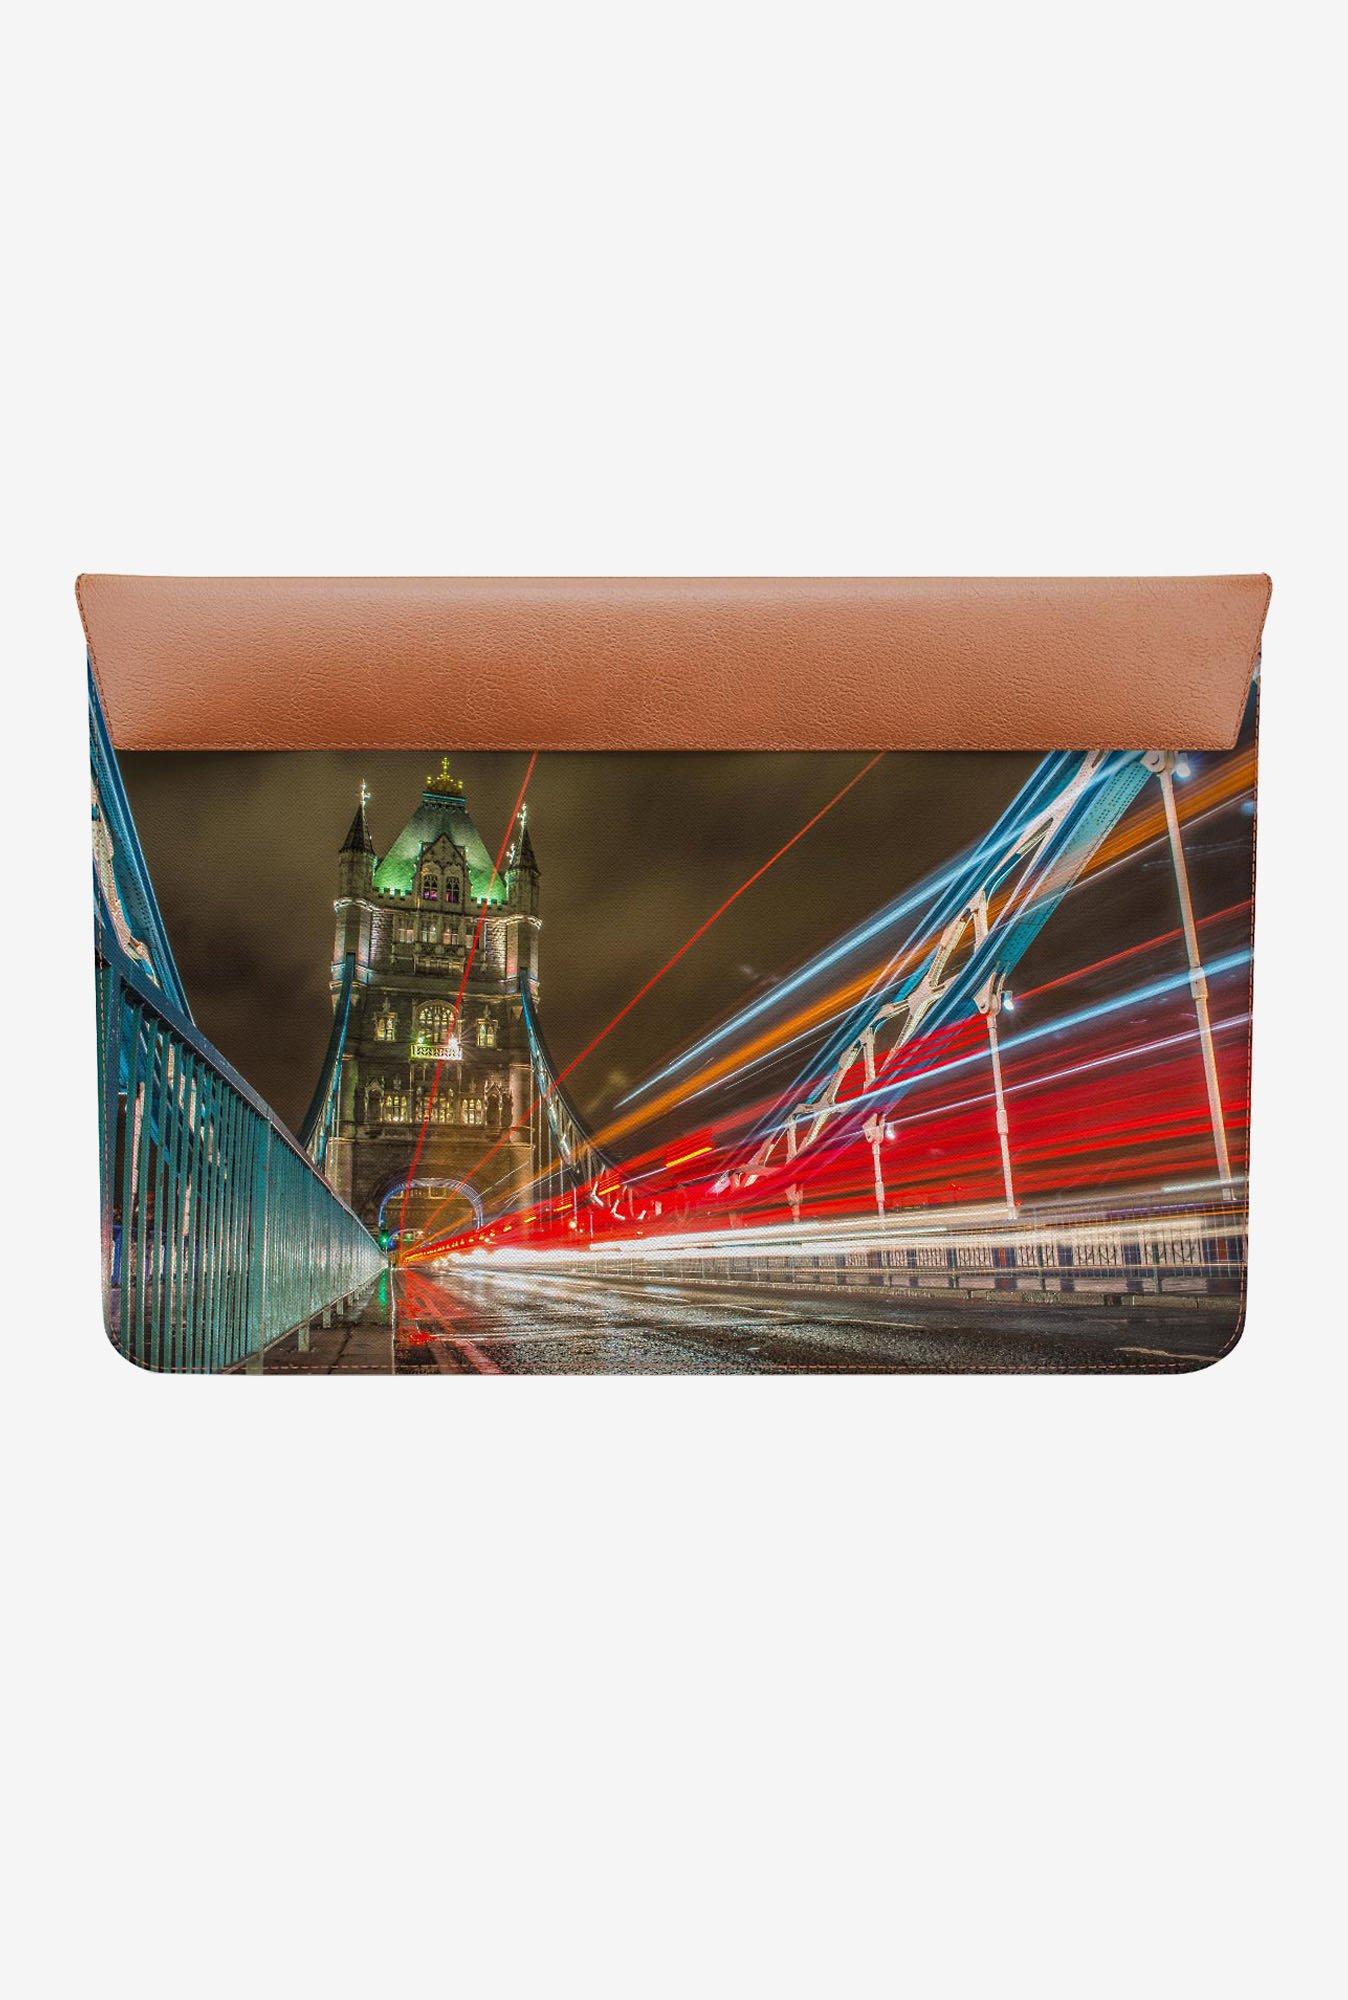 DailyObjects Bridge by Night MacBook Air 11 Envelope Sleeve